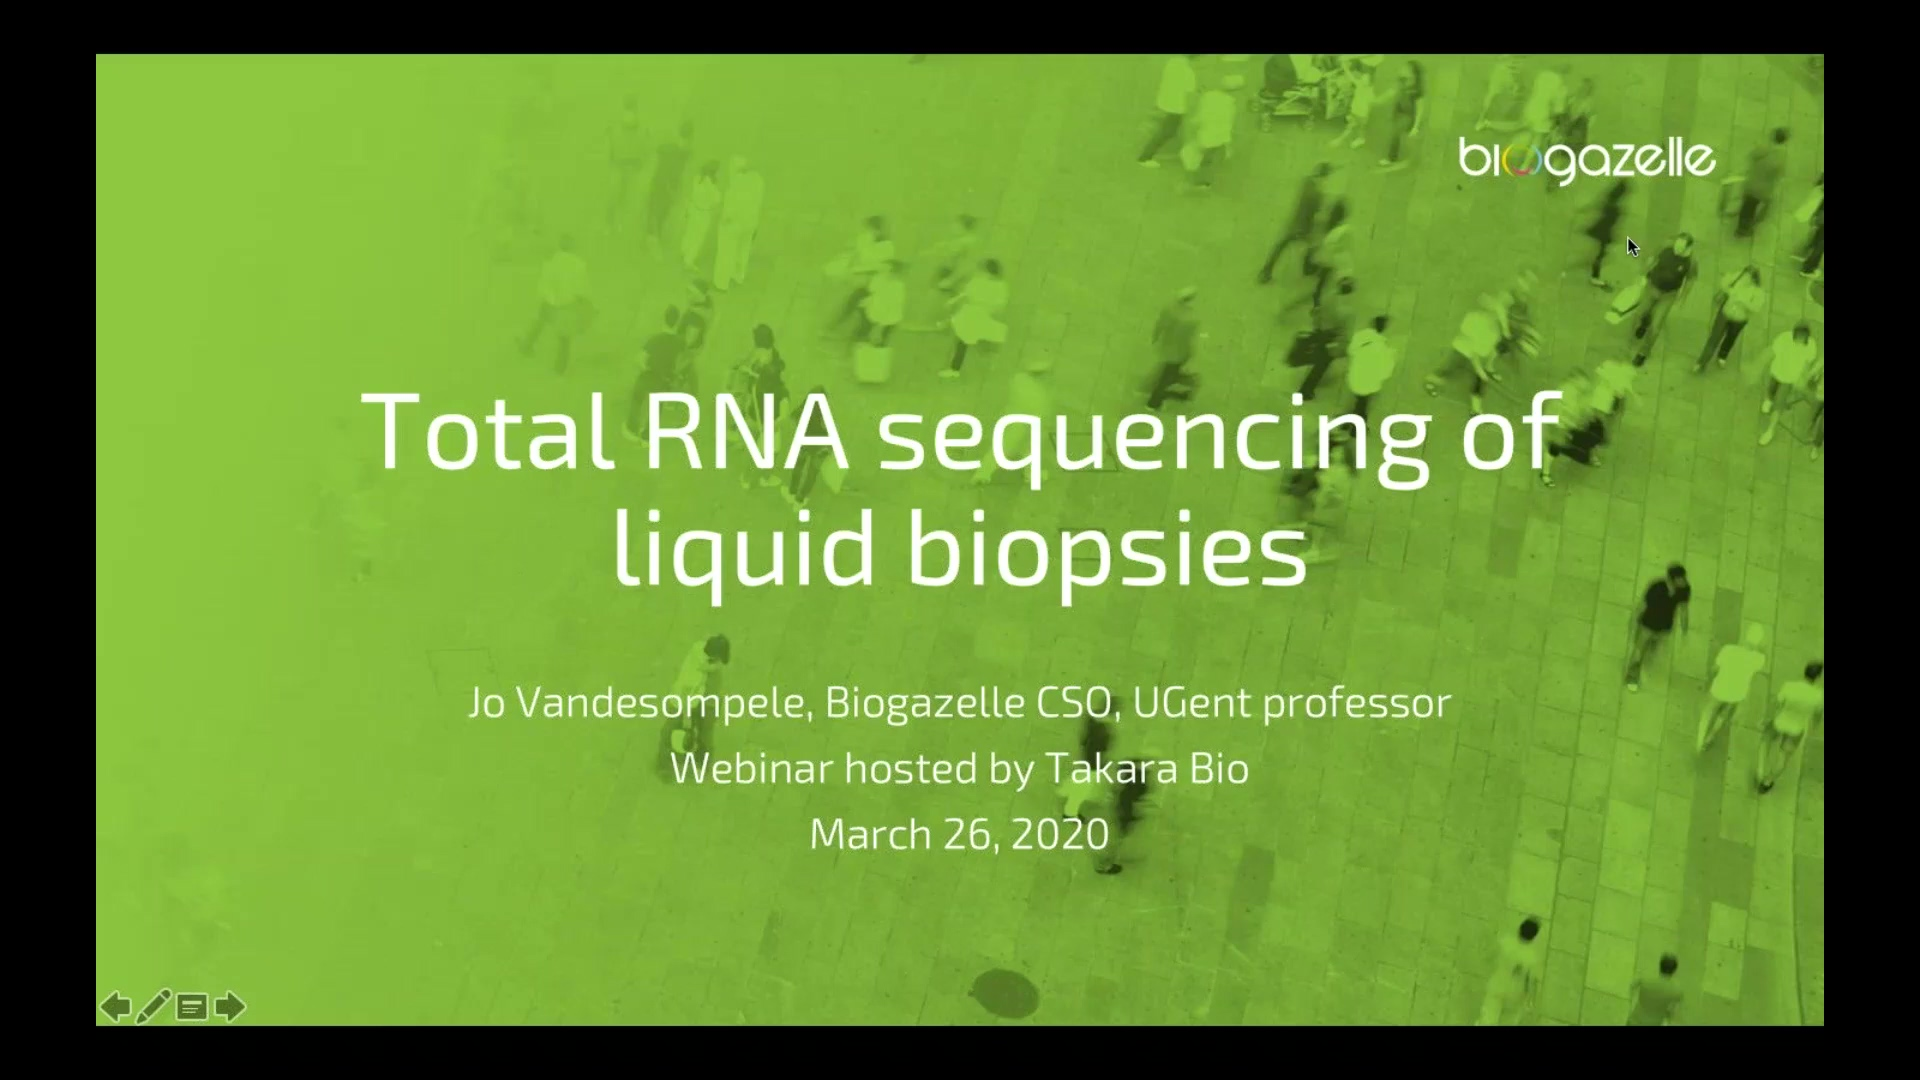 Total RNA sequencing of liquid biopsies